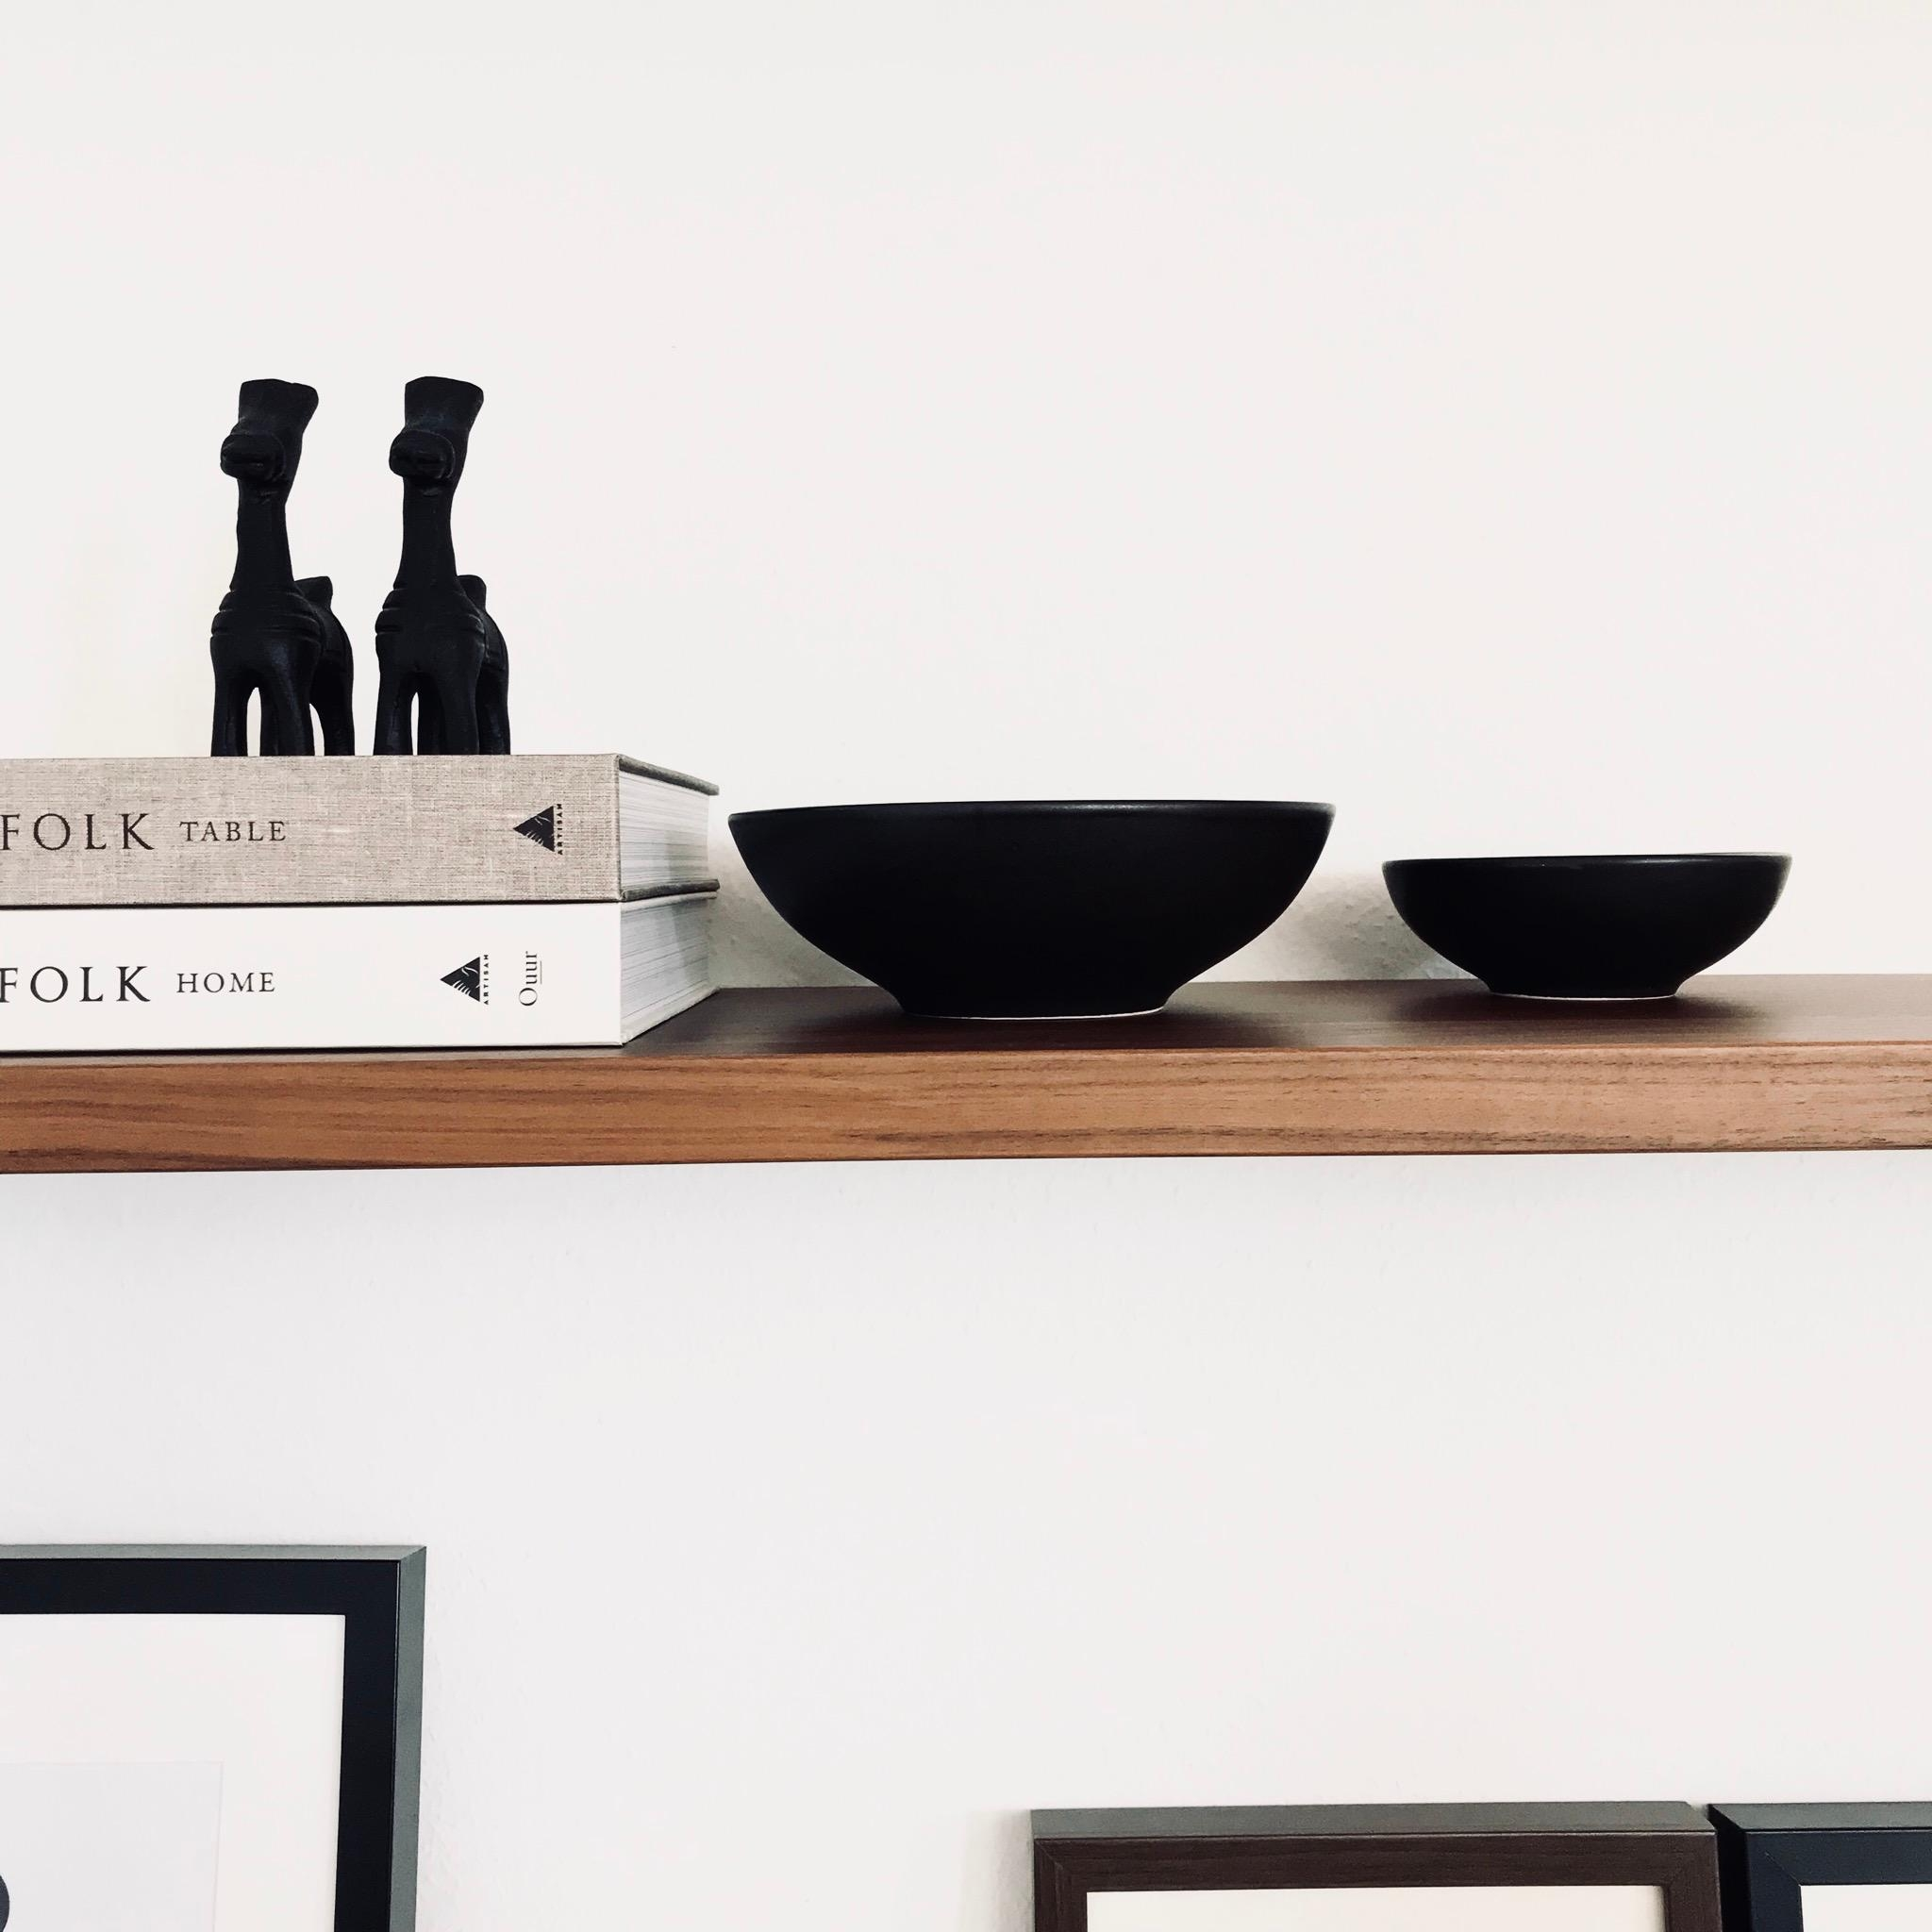 A little shelfie never killed nobody.